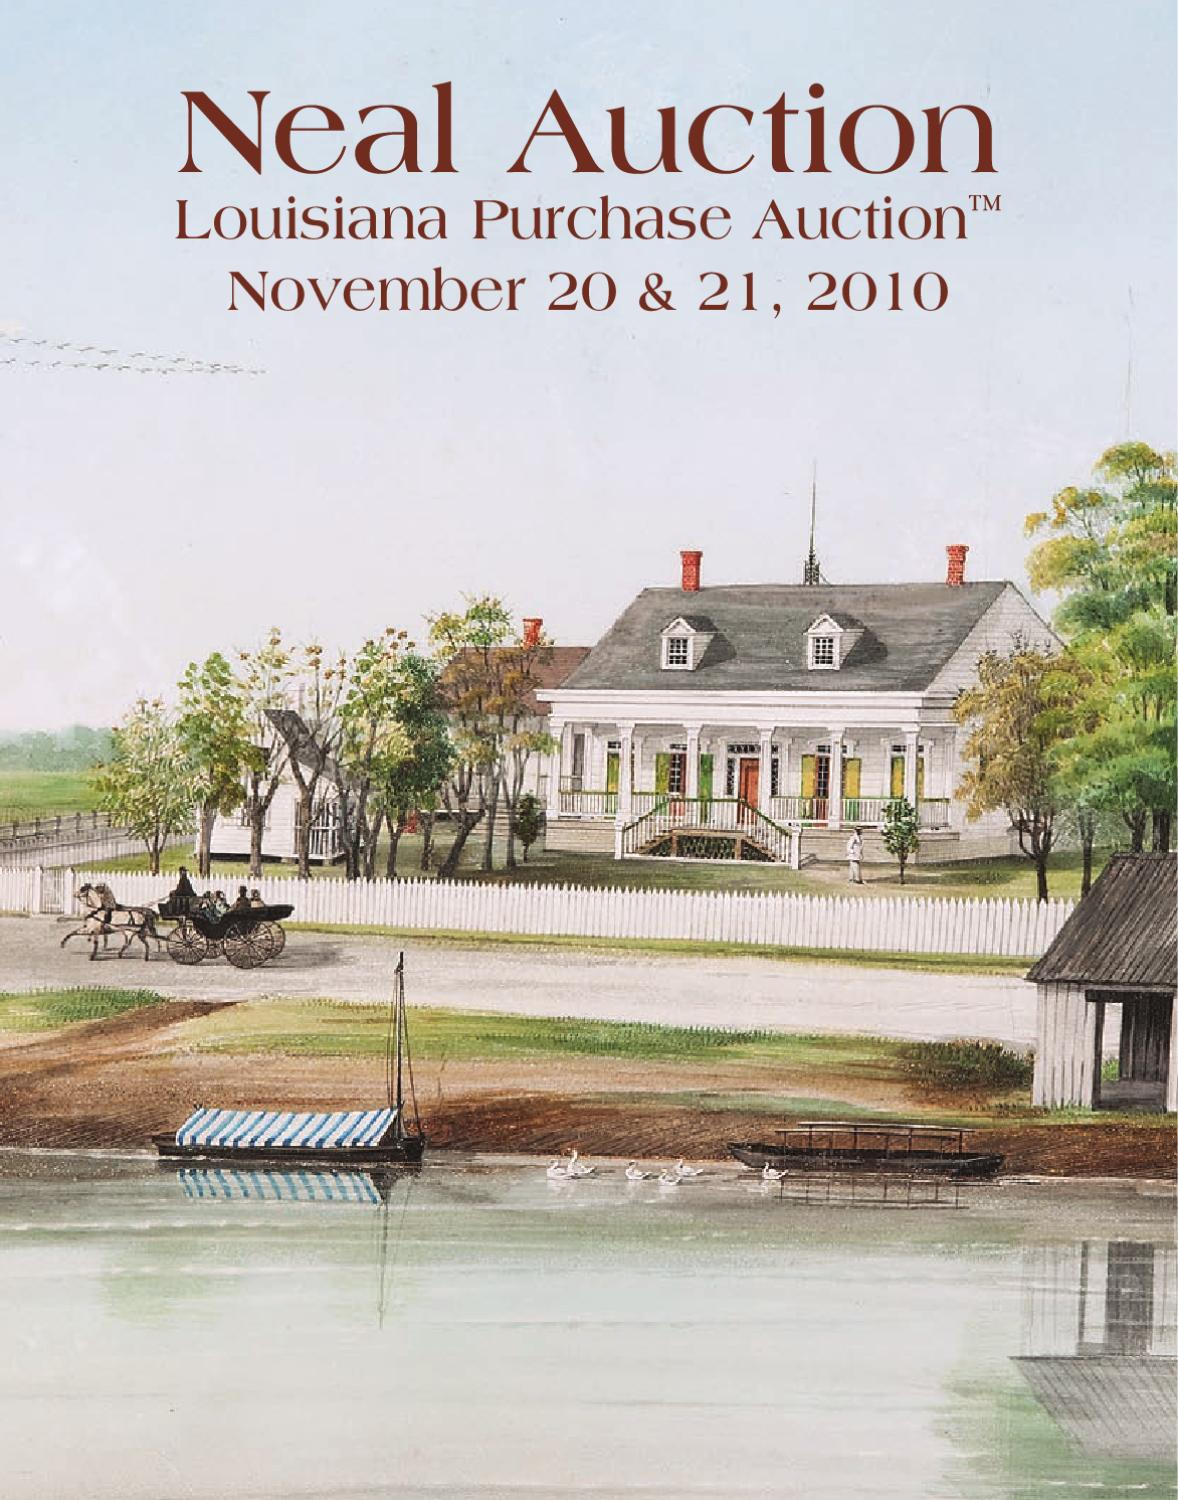 Neal Auction Louisiana Purchase Auction Nov 20 & 21 by Neal Auction ...